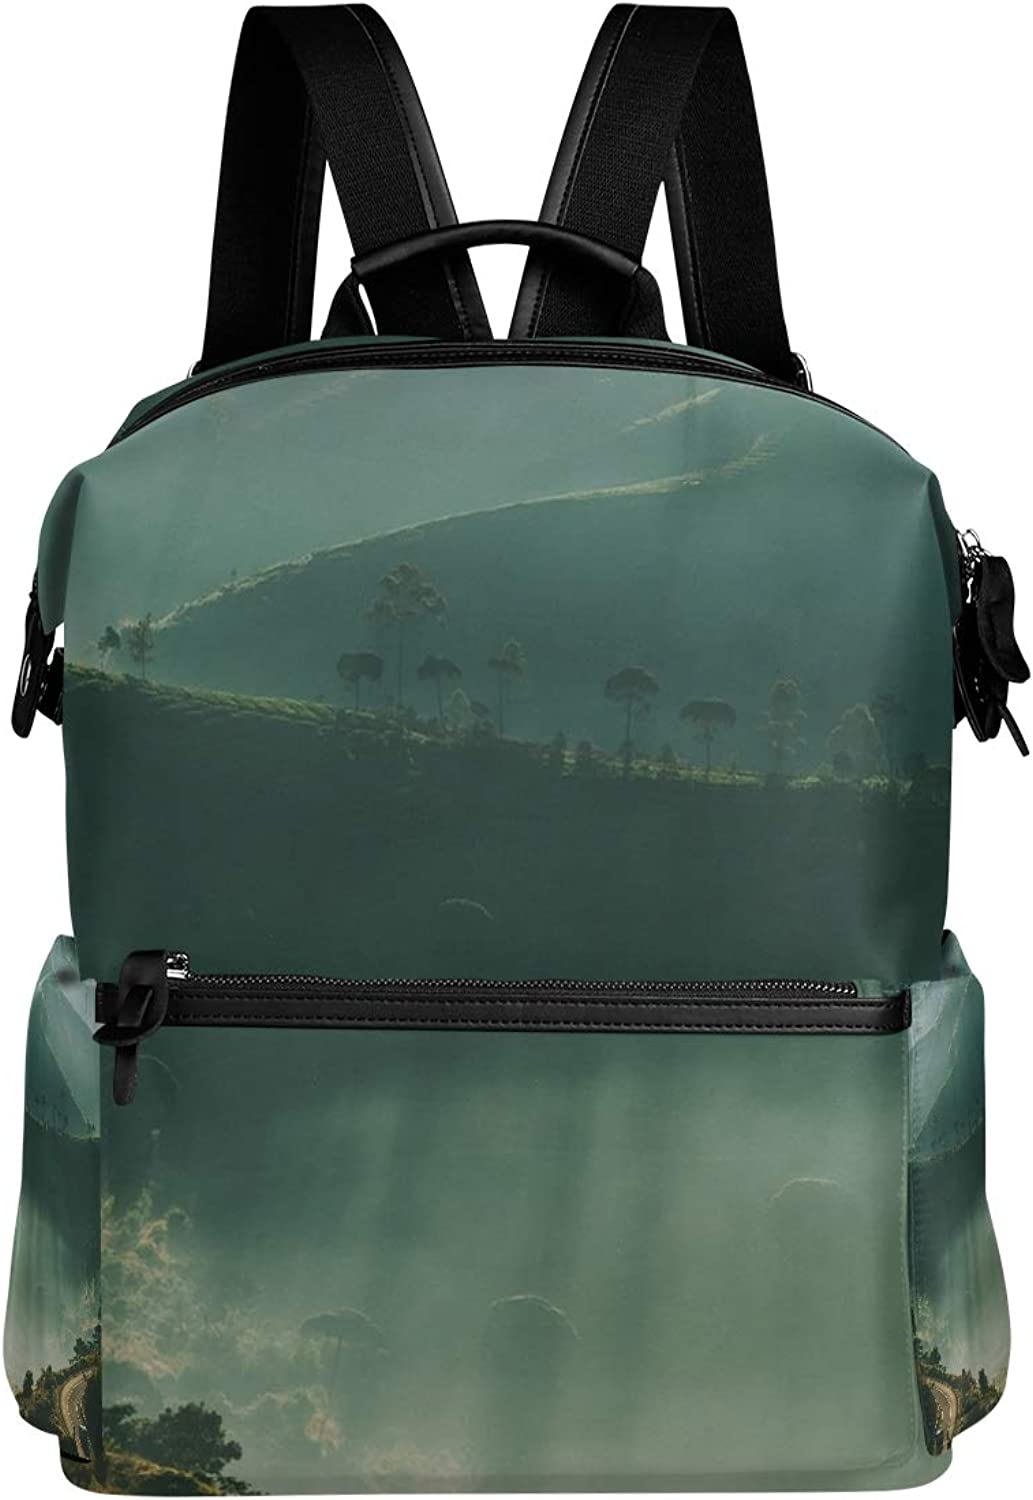 MONTOJ Hazy Green Hilly Mountain Leather Travel Bag Campus Backpack